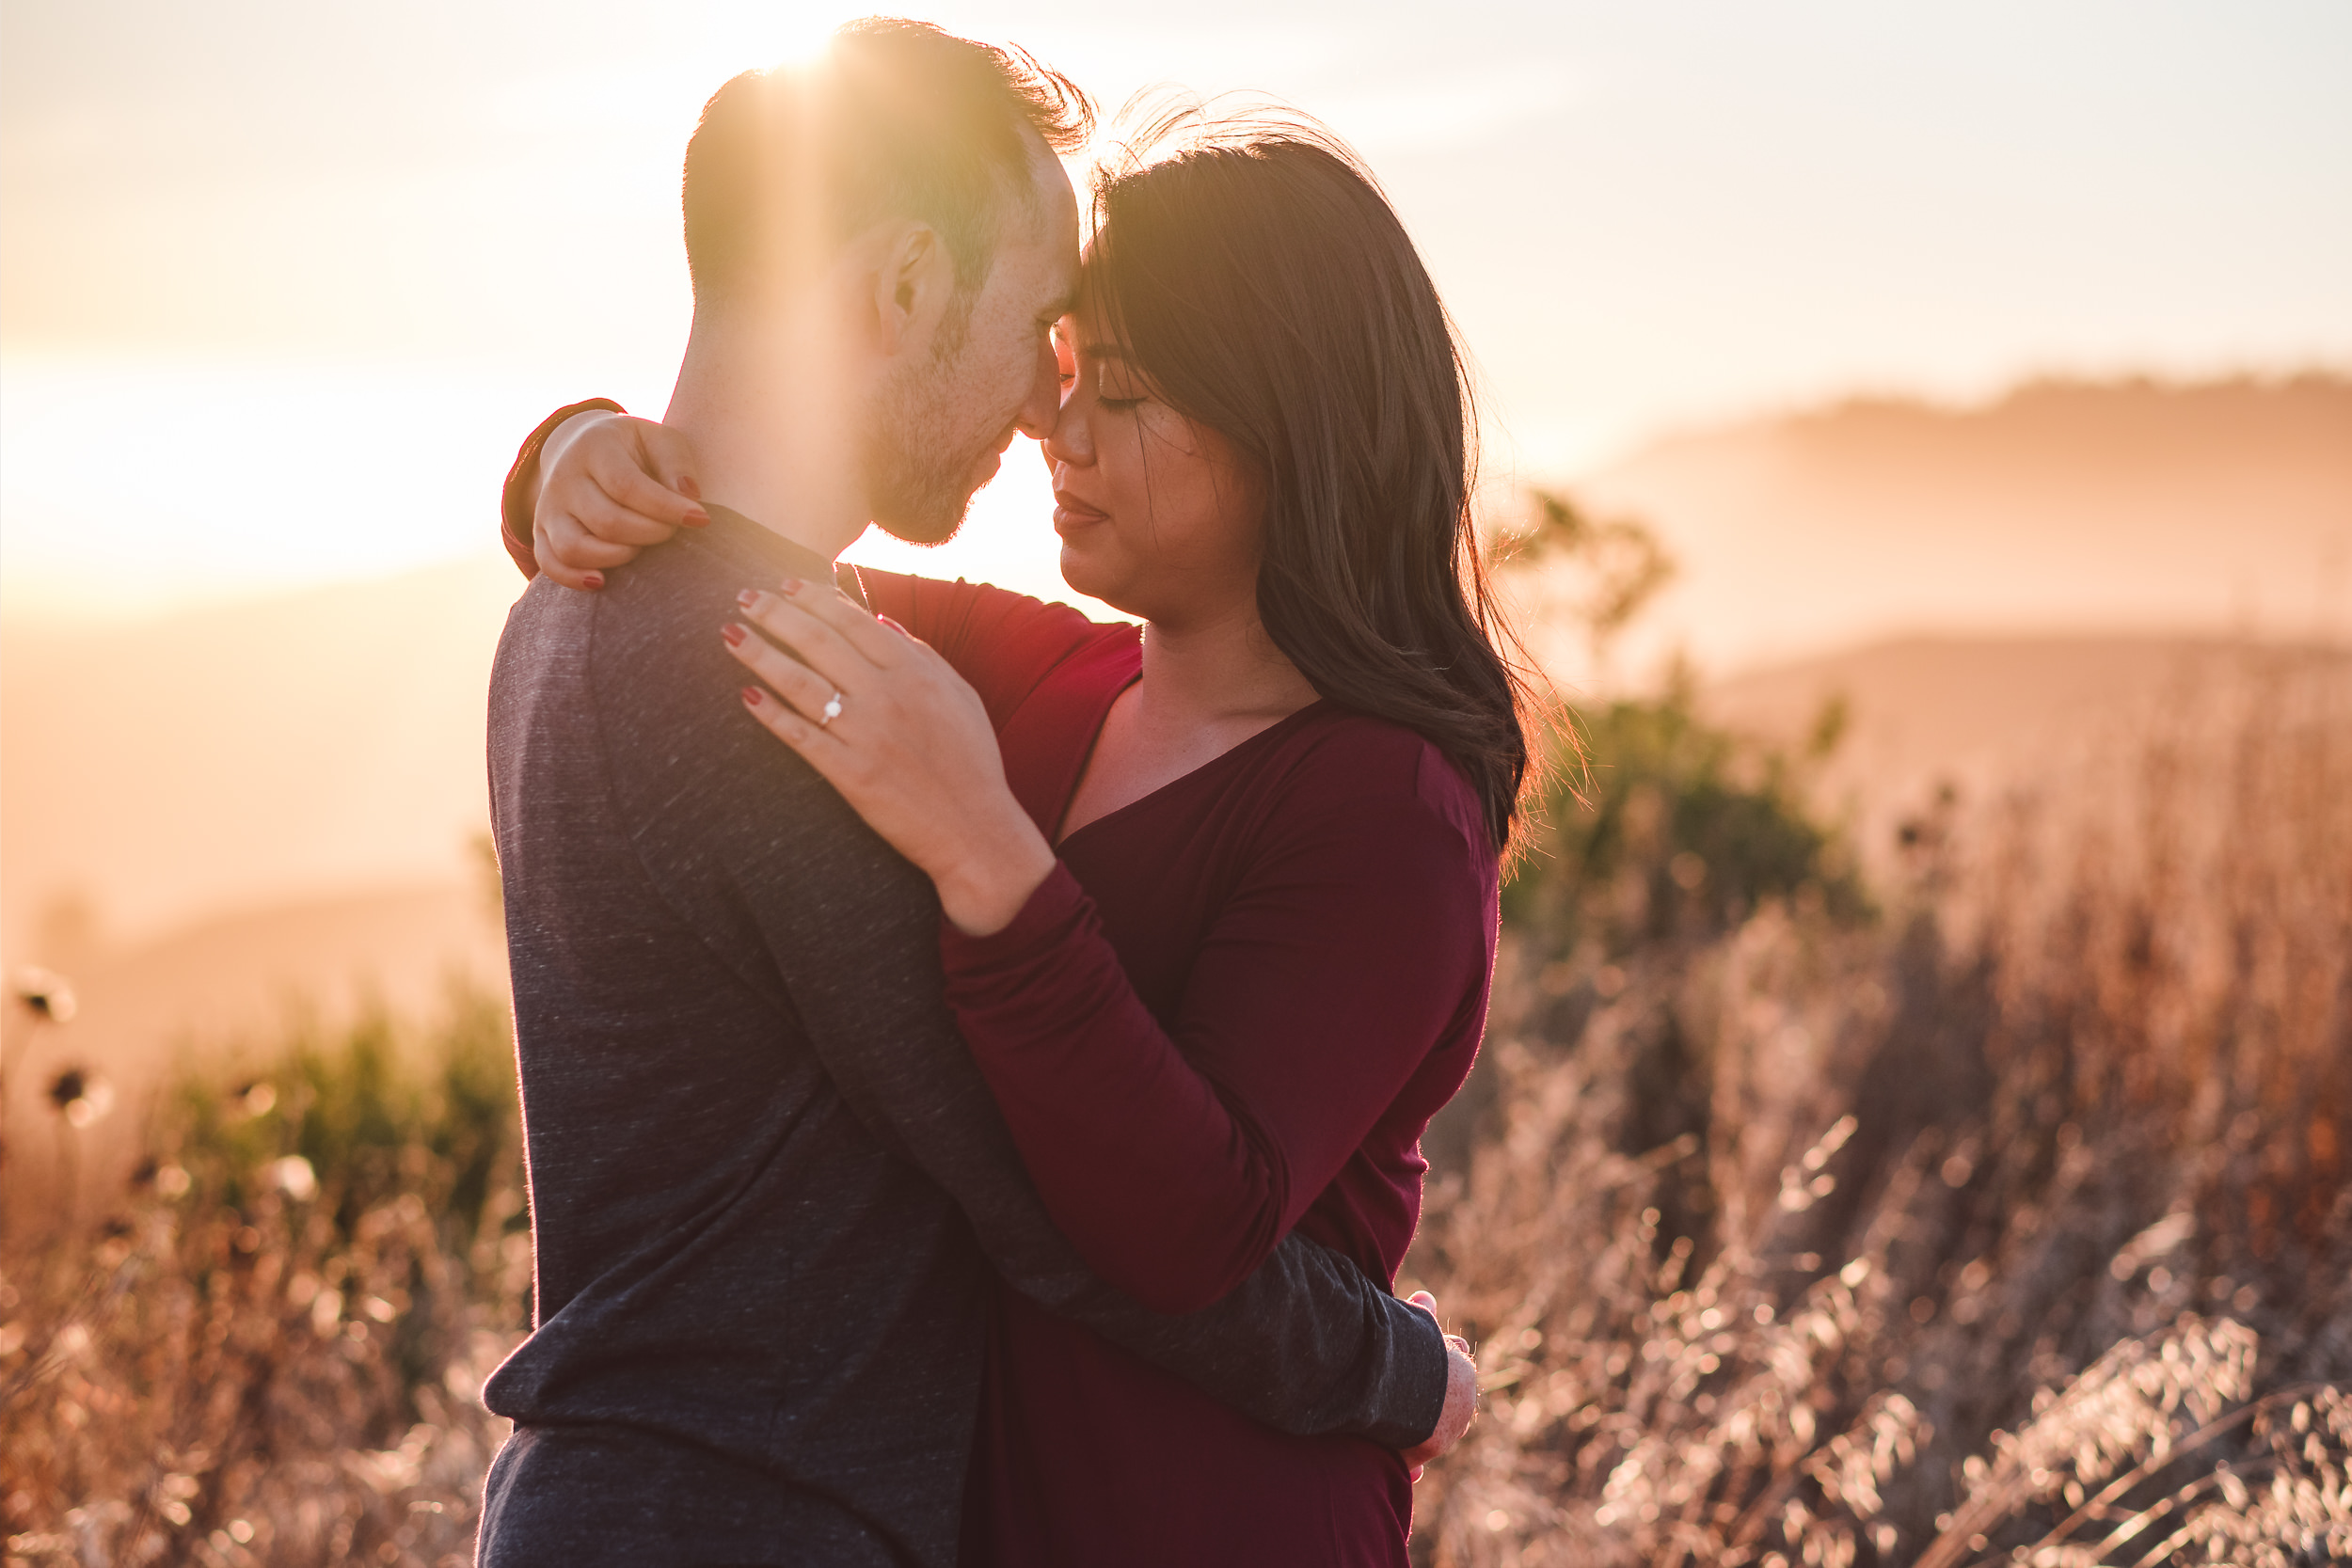 Windy-Hill-Open-Space-Preserve-Palo-Alto-Engagement-Photography-010.jpg